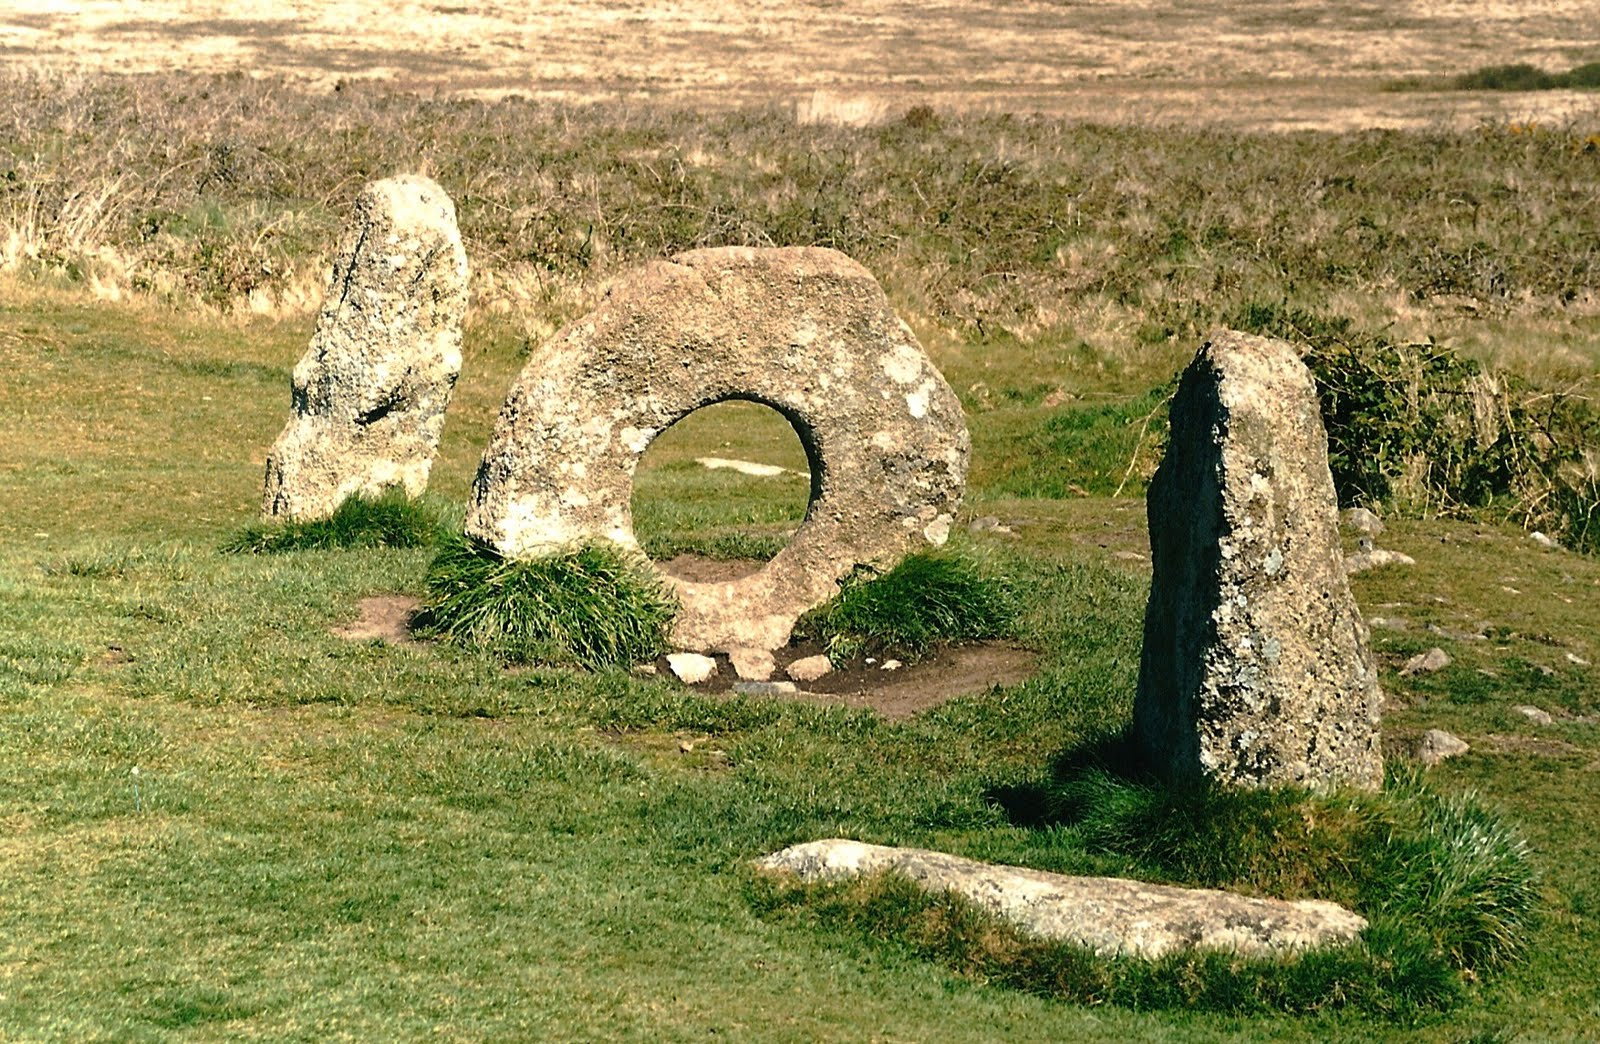 Britain S Landscape Symbols And Mysteries The Standing Stones Of Mên An Tol Celticsprite S Blog